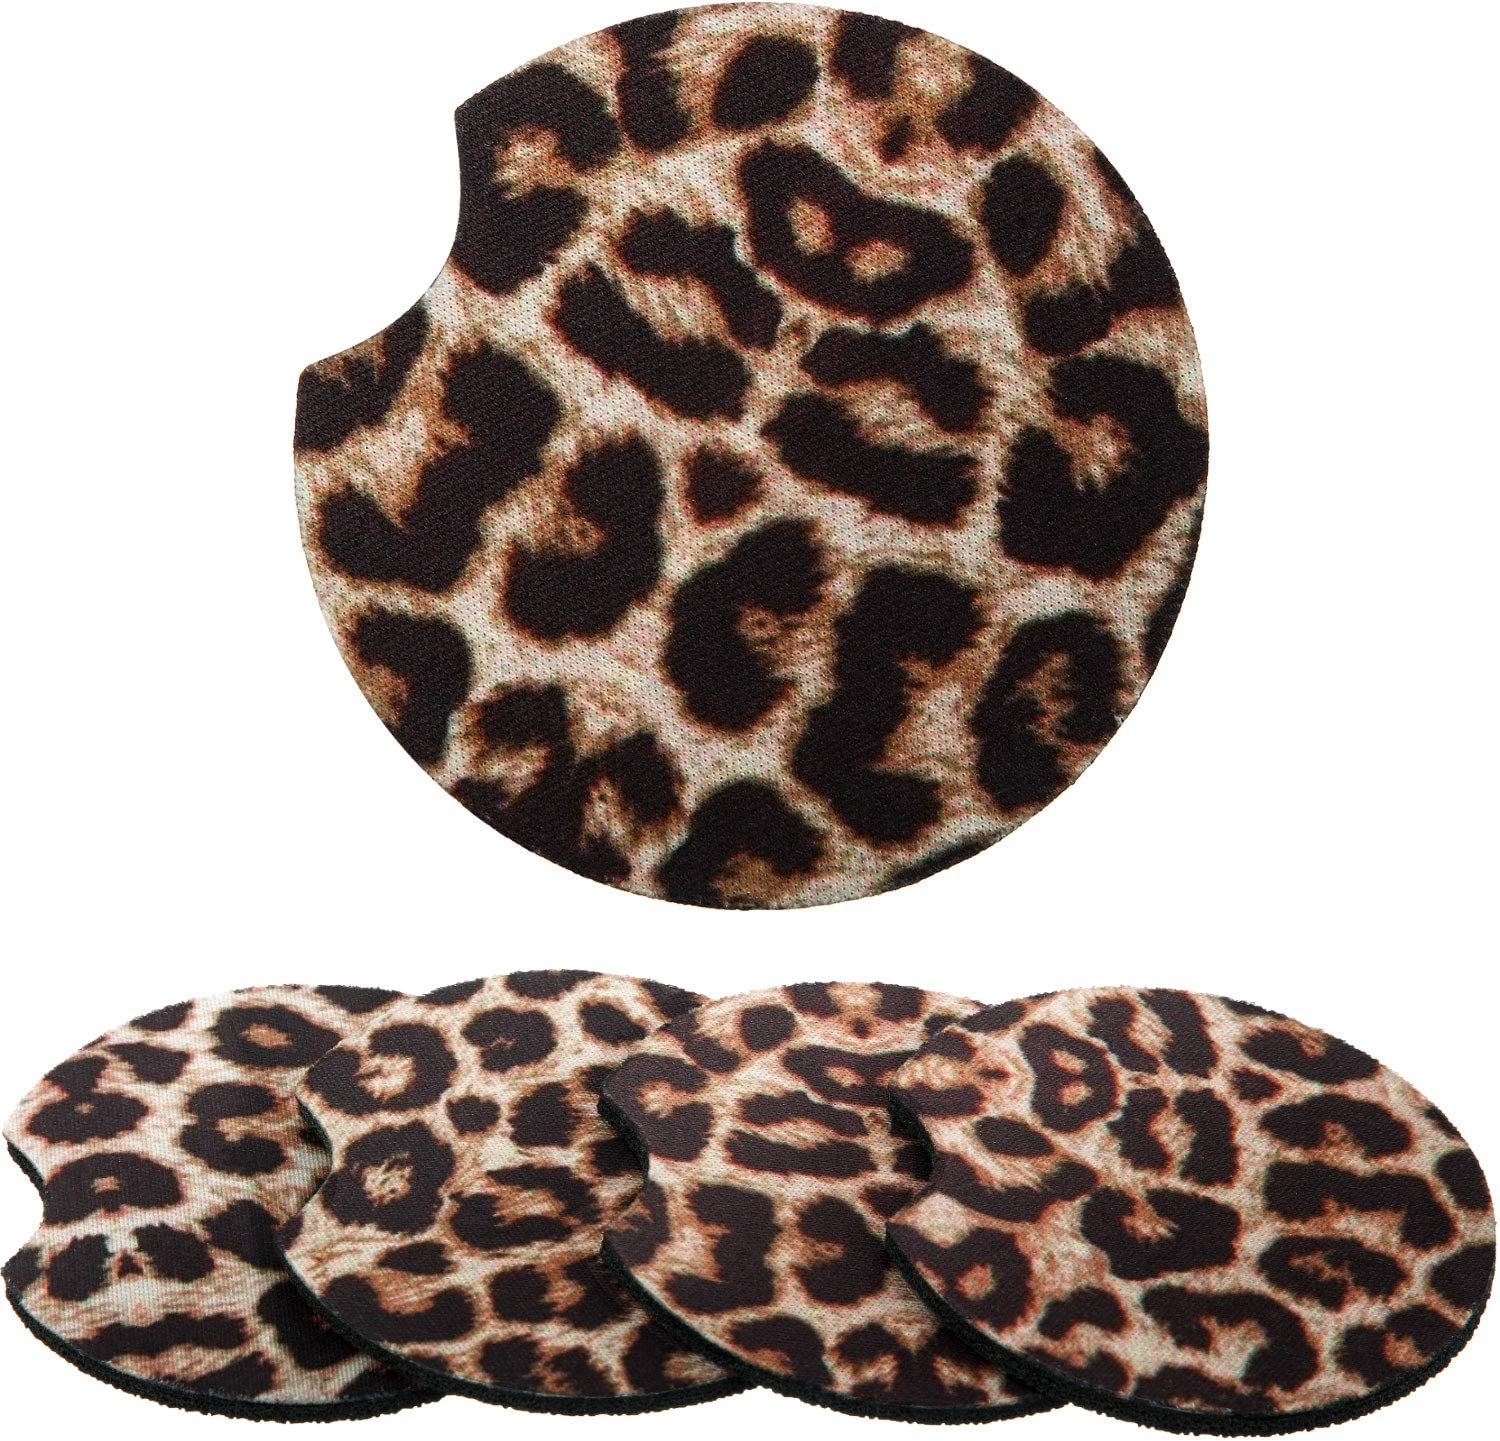 Boao 2.56 Inch Leopard Car Coasters for Drinks Neoprene Cup Coaster Rubber Car Cup Pad Mat Car Accessories for Car Living Room Kitchen Office to Protect Car and Furniture (4)